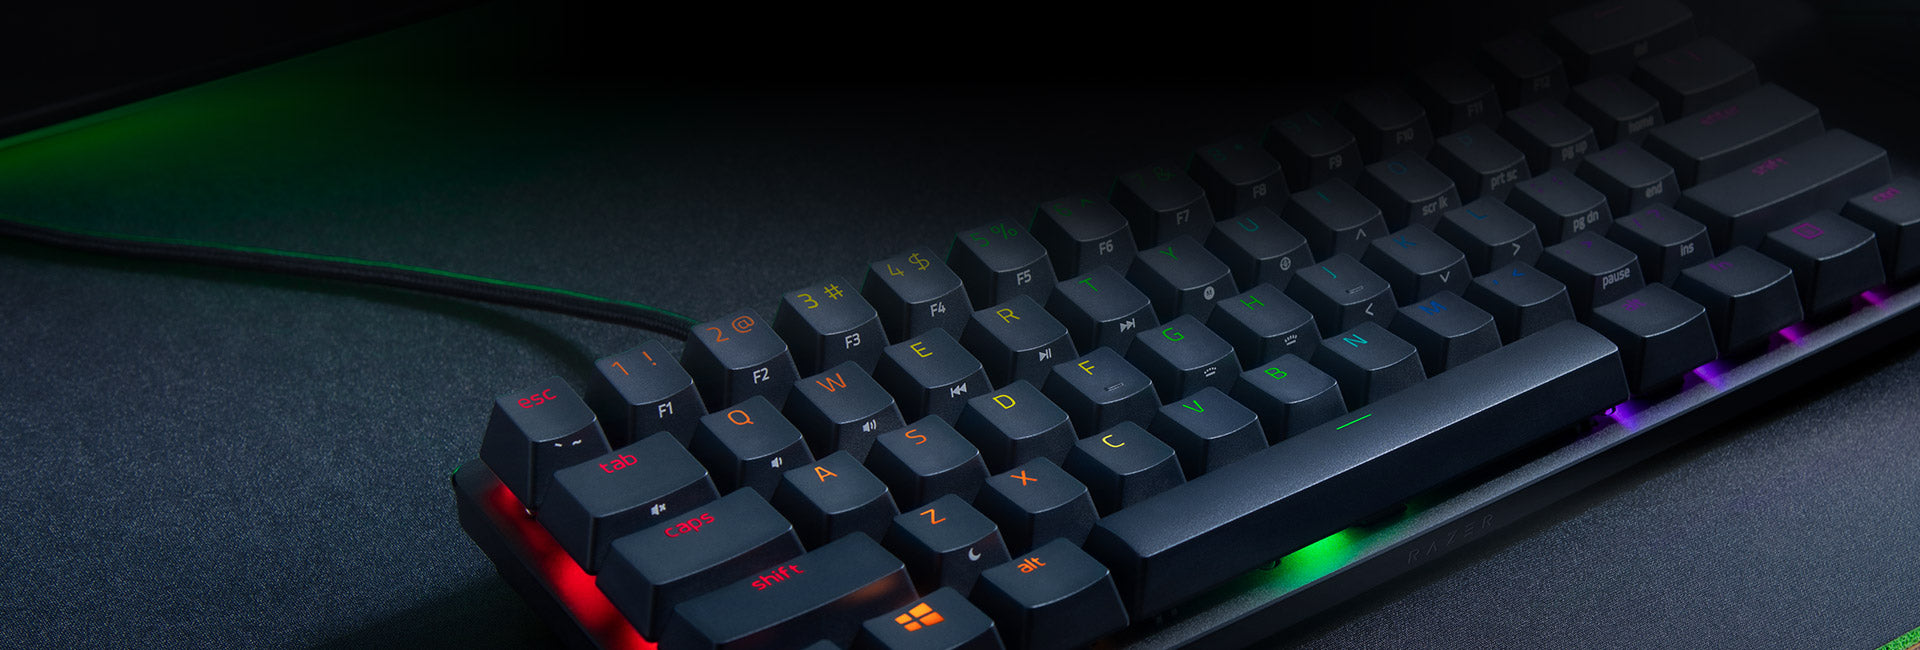 DOUBLESHOT PBT KEYCAPS WITH SIDE-PRINTED SECONDARY FUNCTIONS - Designed for greater durability, the keycaps on this 60% gaming keyboard have a premium, textured quality that'll never degrade to a shiny finish or have their labelling wear off with intense use. For easier reference when executing commands and hotkeys, side-printed secondary functions have also been added.